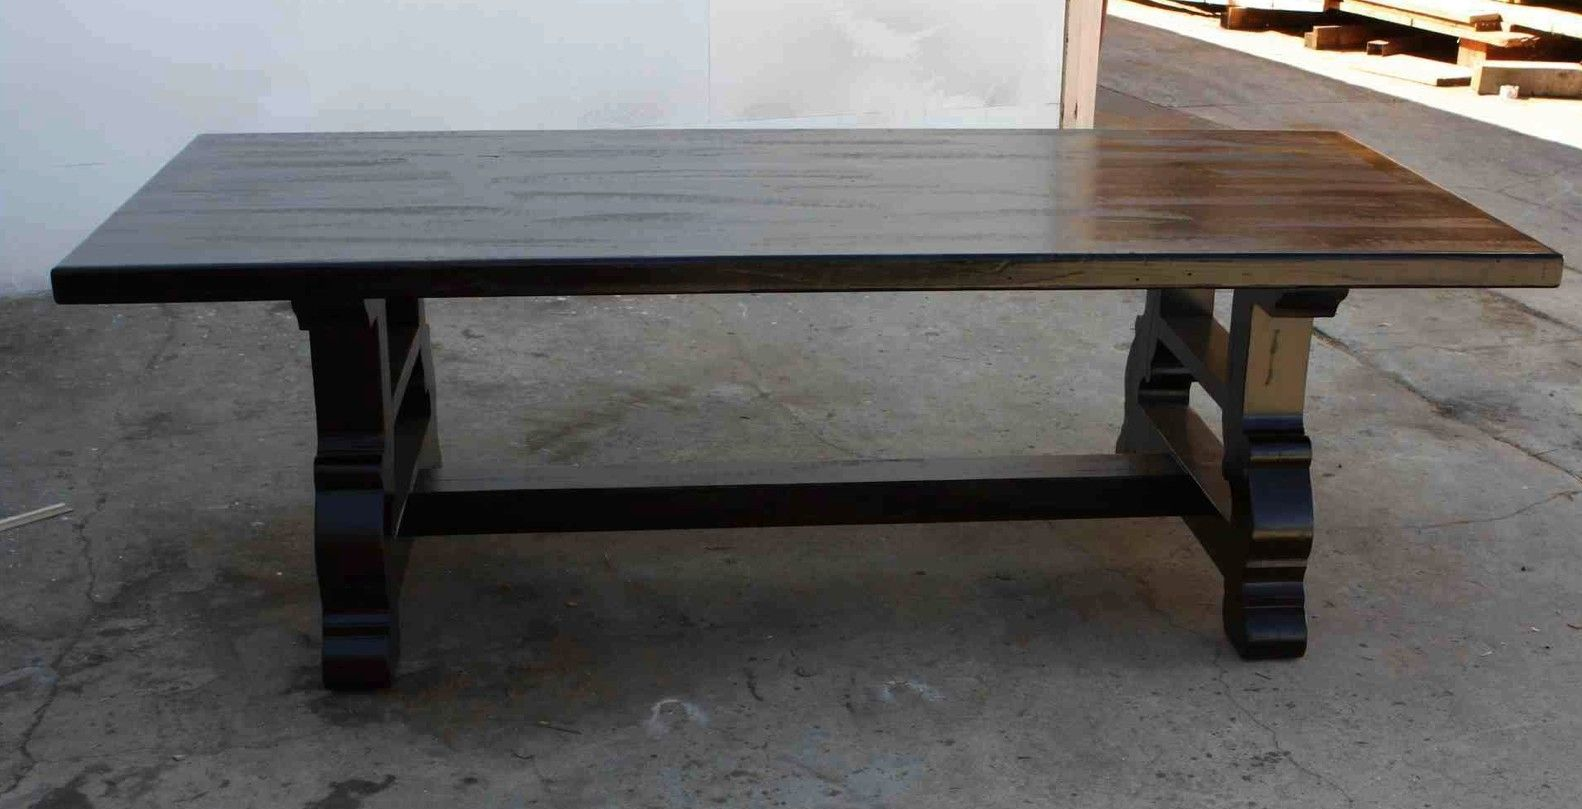 Handmade Spanish Trestle Dining Table In Reclaimed Wood by  : 11617152648 from www.custommade.com size 1582 x 809 jpeg 127kB